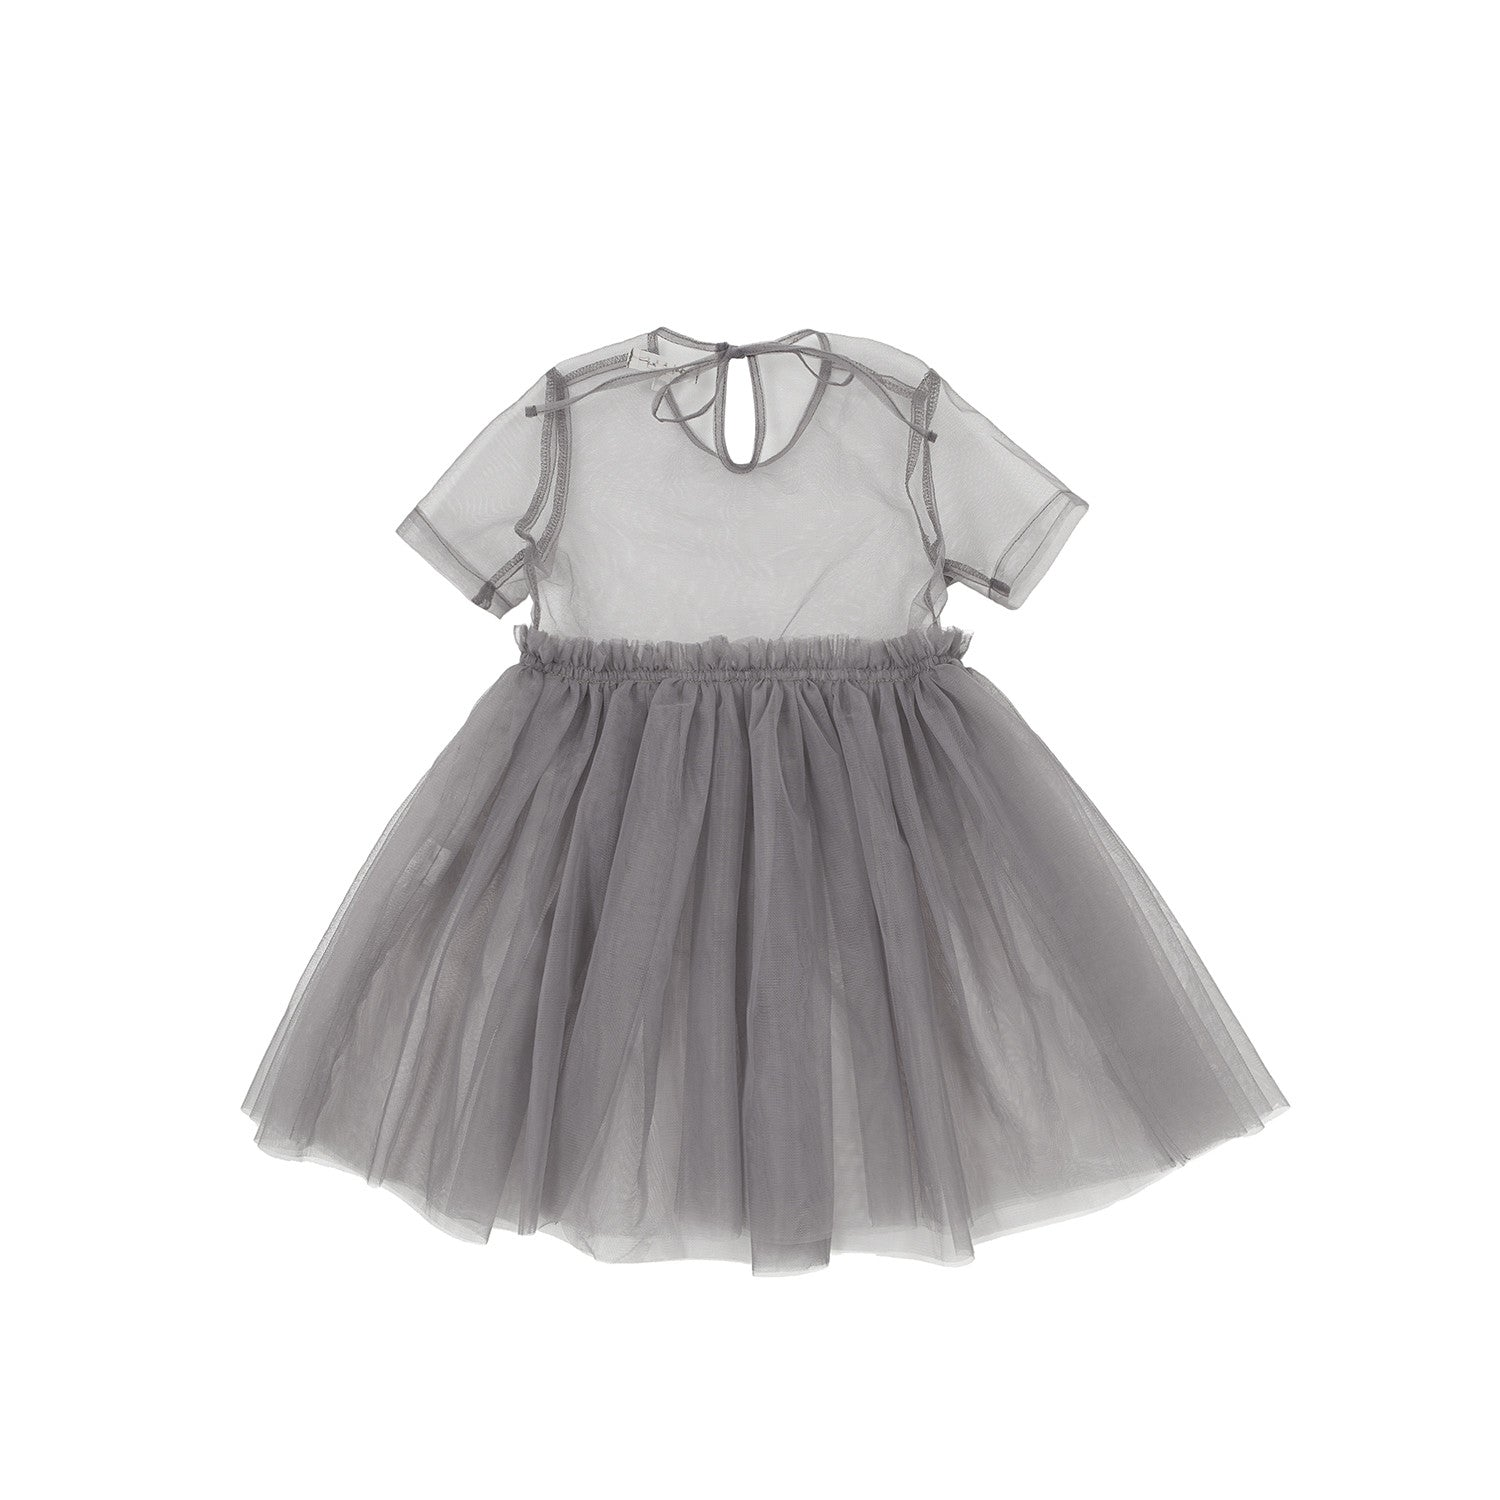 Bene Bene Grey Cotton Candy Tulle Dress - Ladida